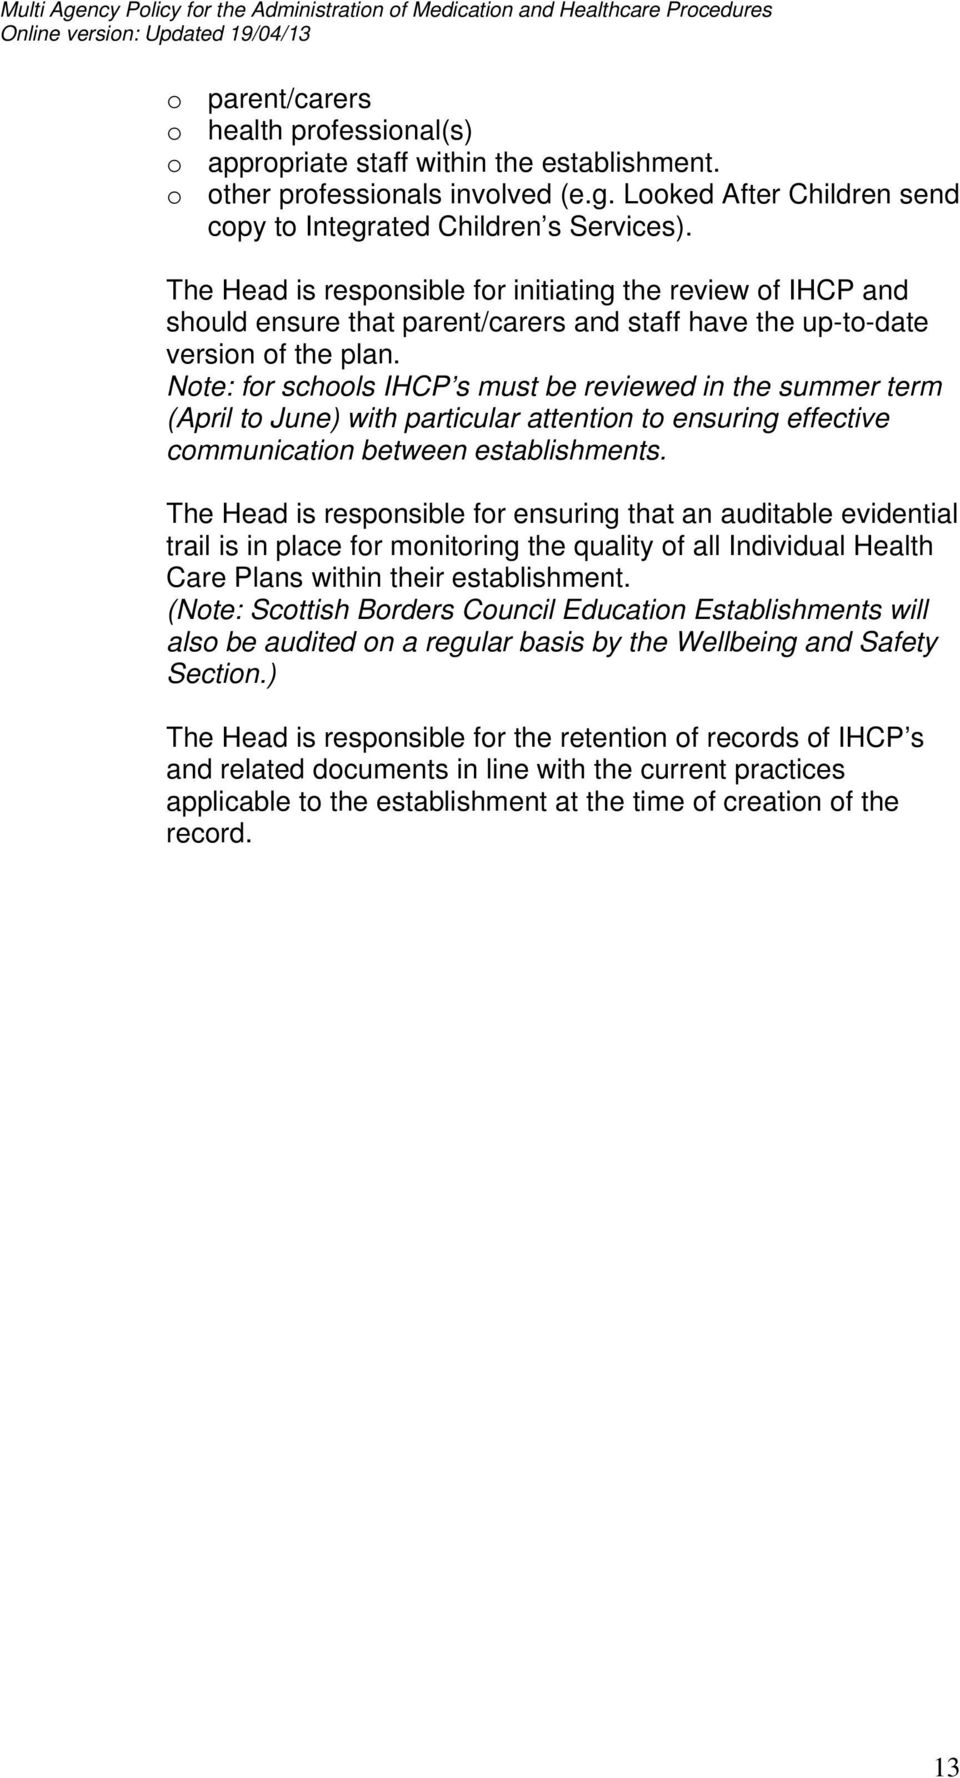 Note: for schools IHCP s must be reviewed in the summer term (April to June) with particular attention to ensuring effective communication between establishments.